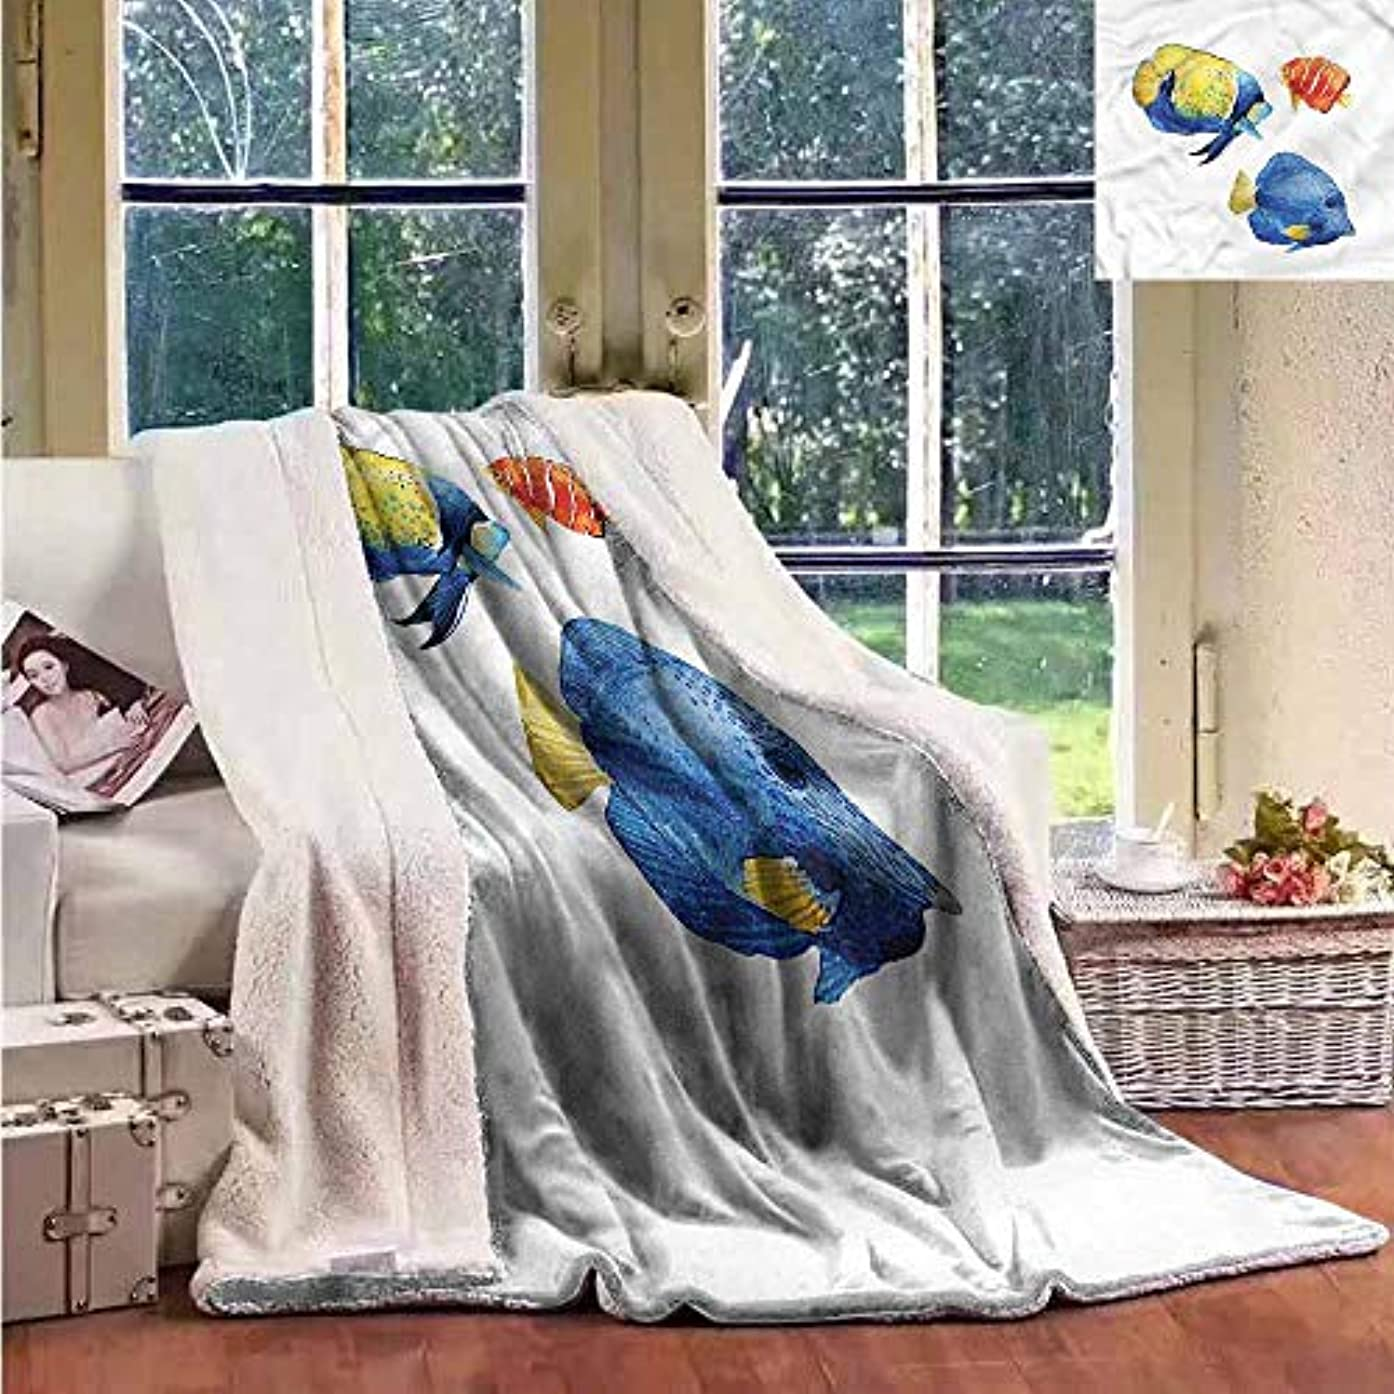 Sunnyhome Throw Blanket Fish Tropic Accents Aquarium Autumn and Winter Thick Blanket W59x78L